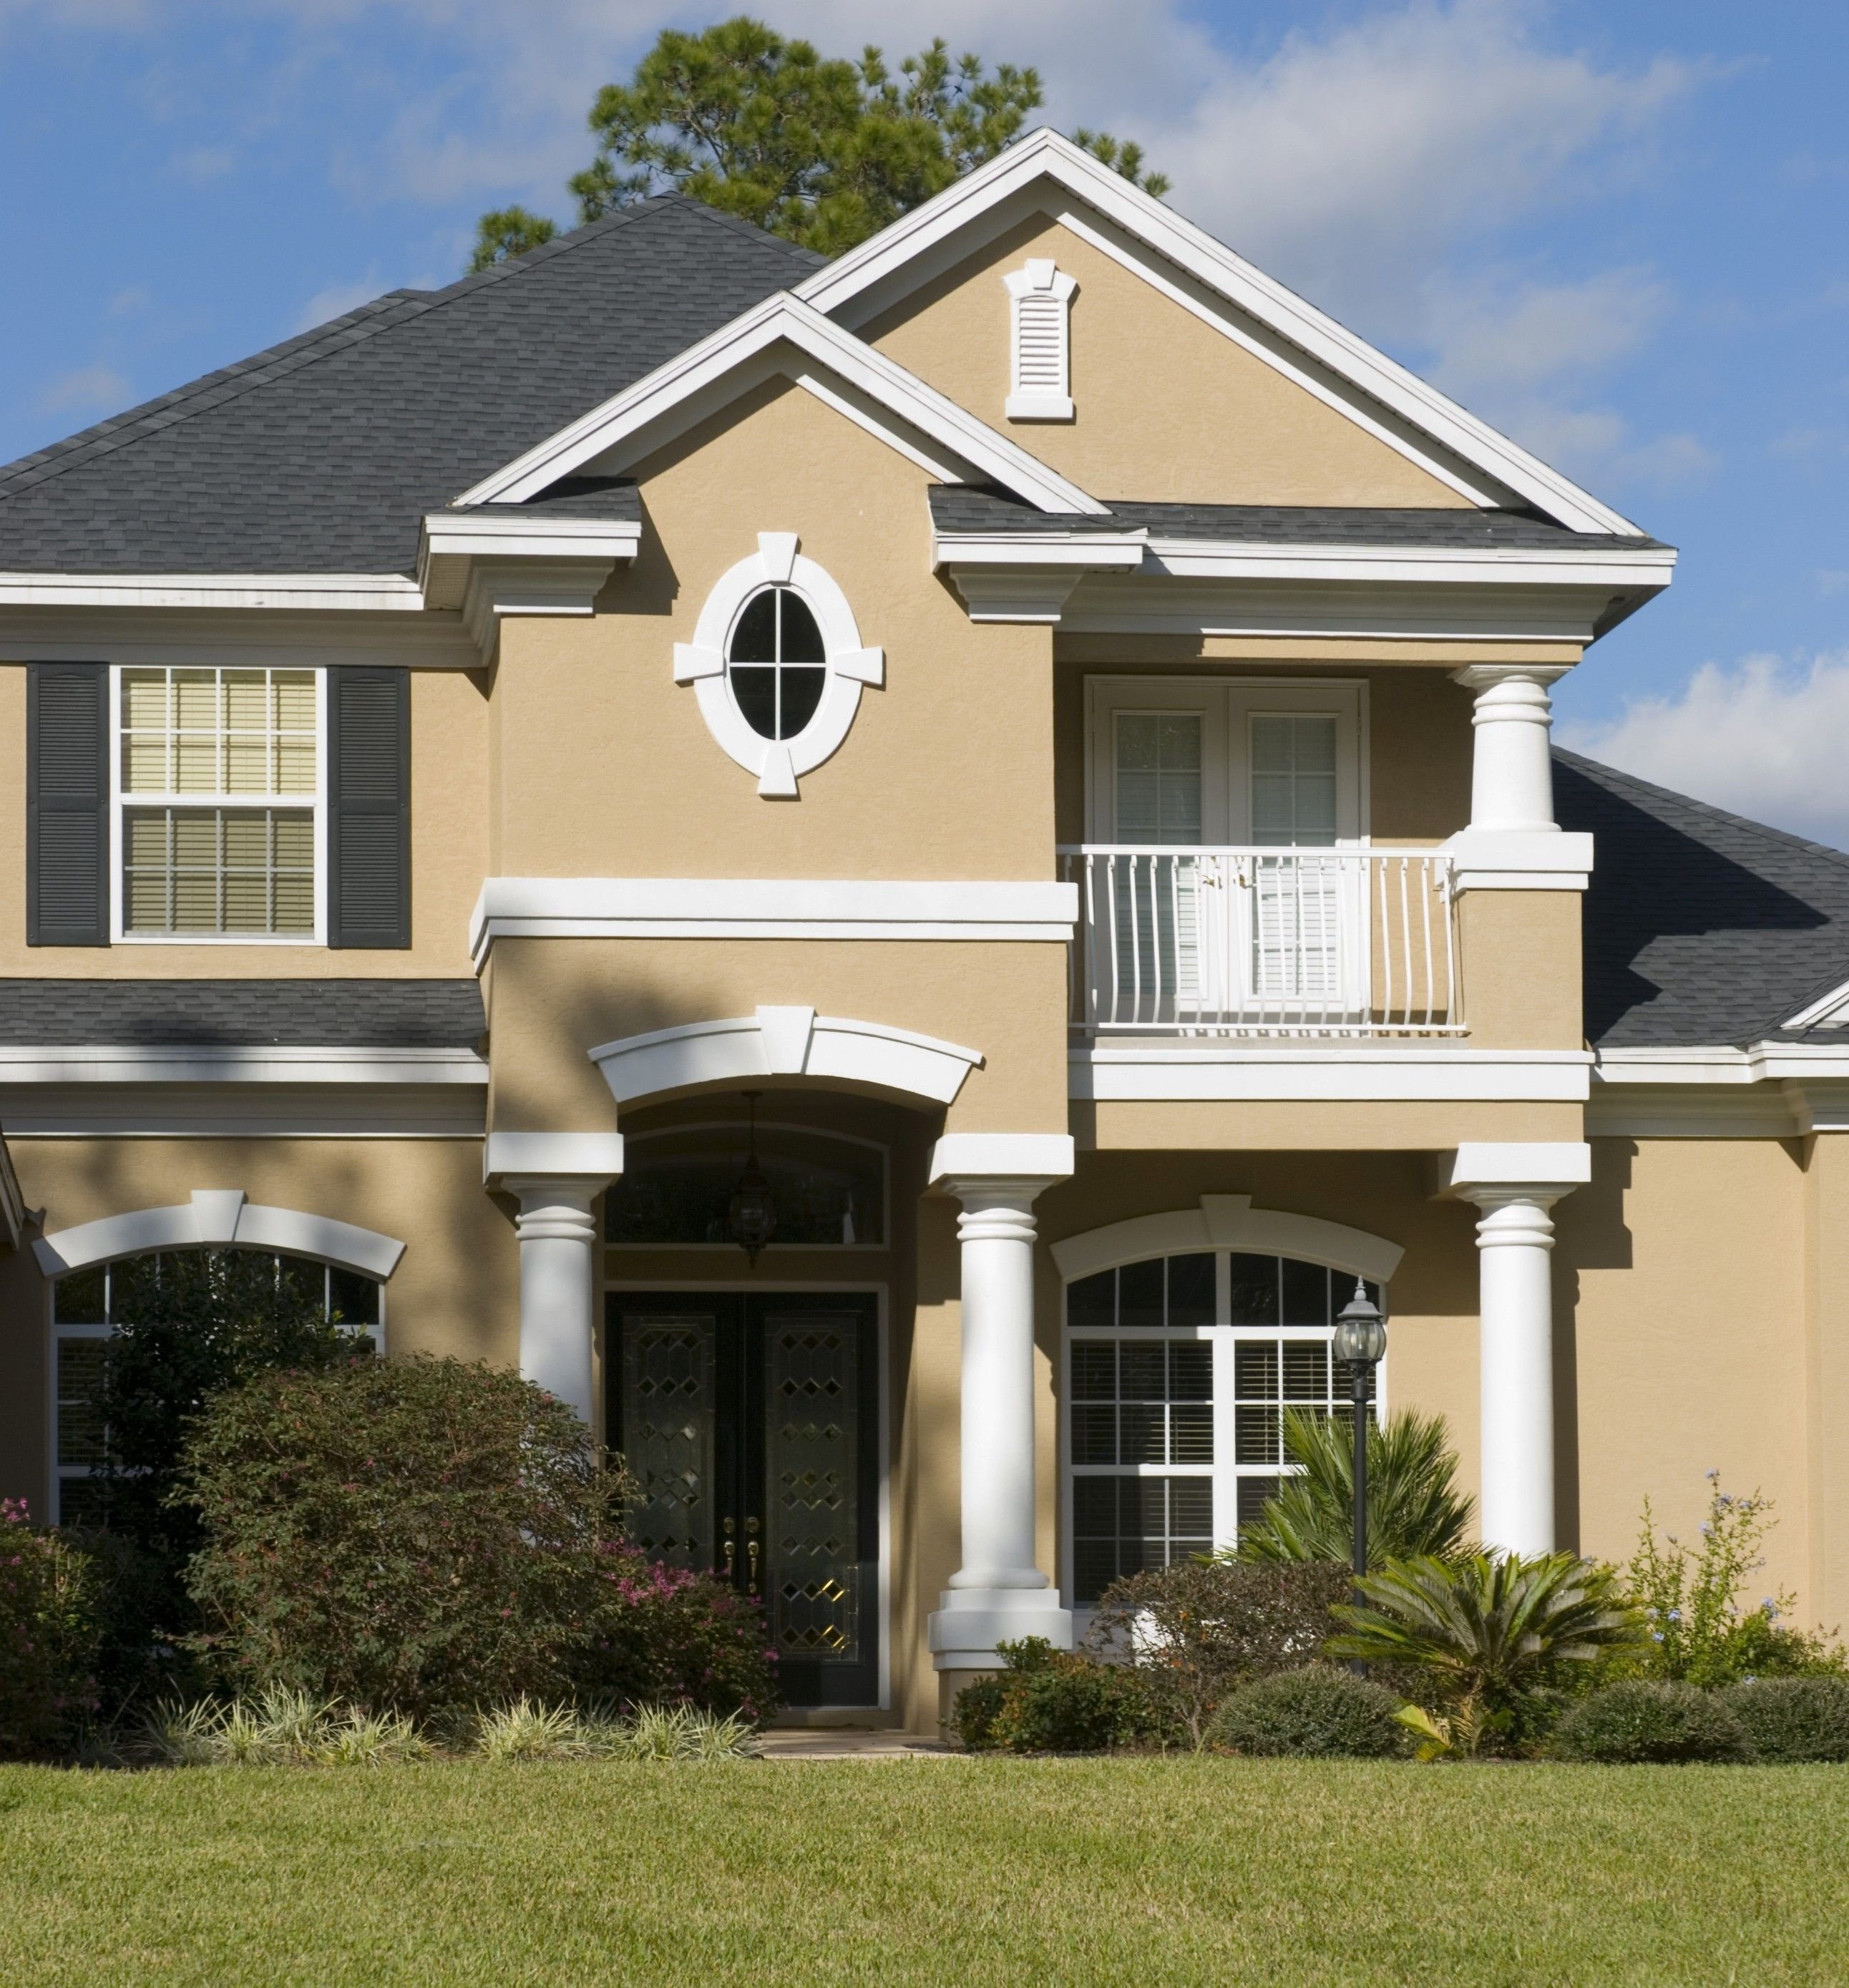 10 Attractive Exterior House Paint Ideas Pictures www exterior house colors color chemistry and house paint 2020